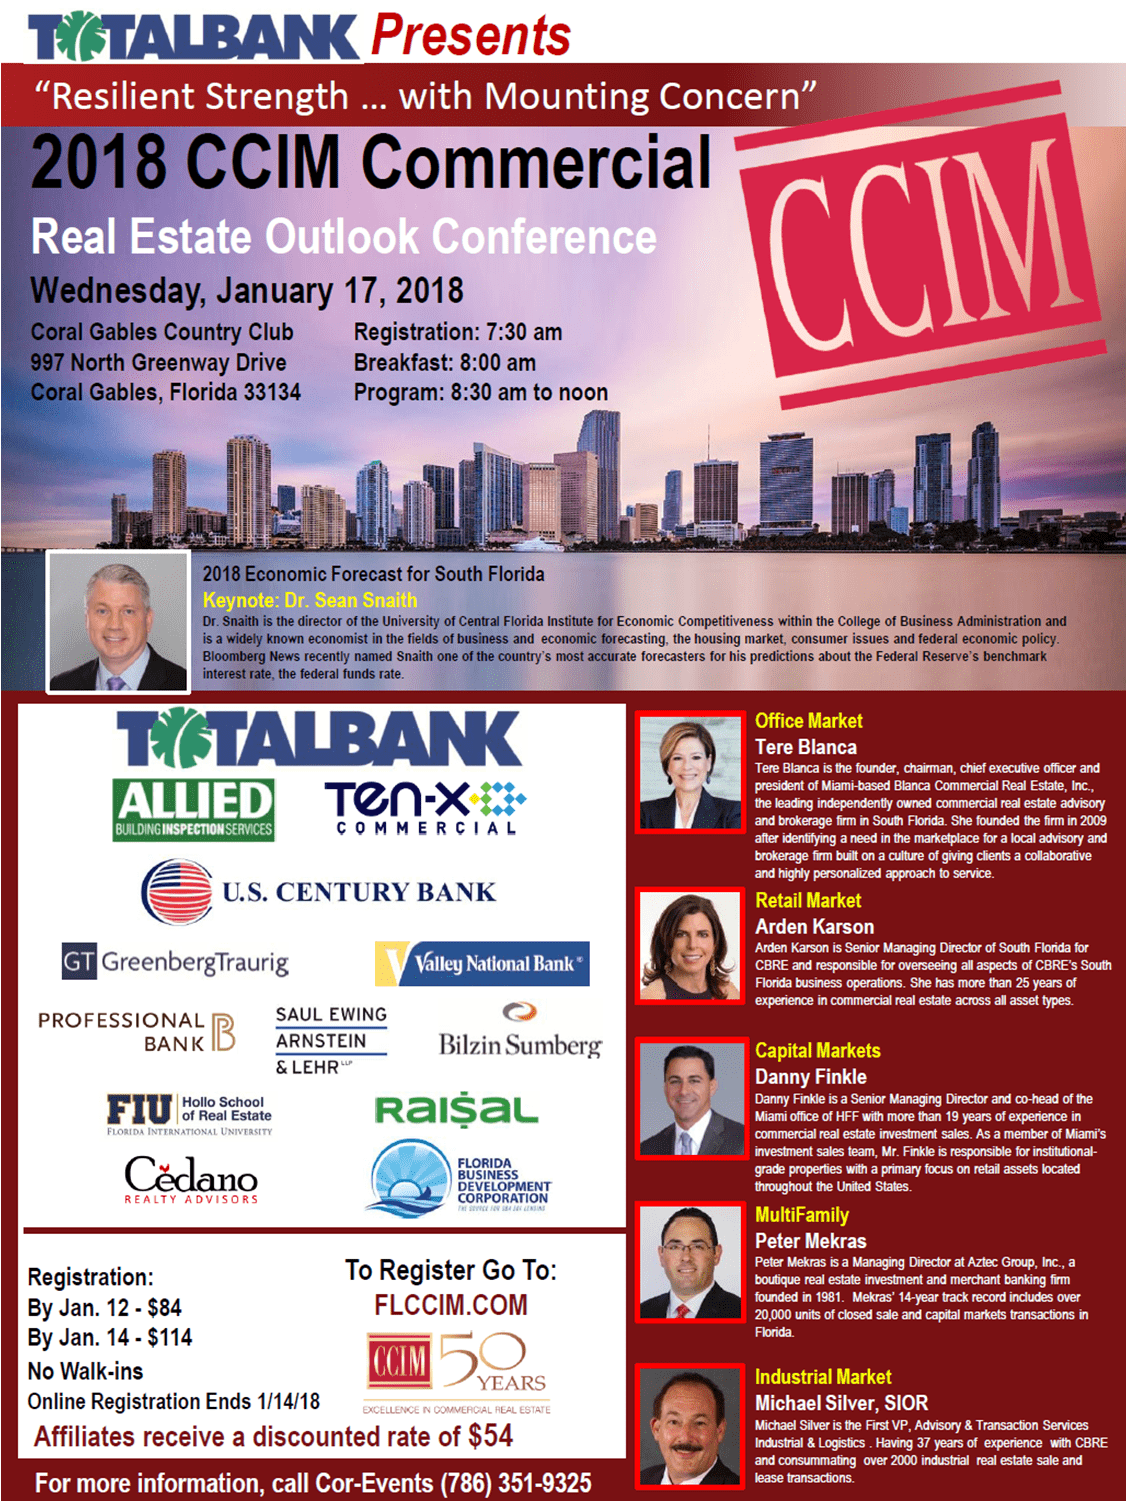 2018 CCIM Commercial Real Estate Outlook Conference